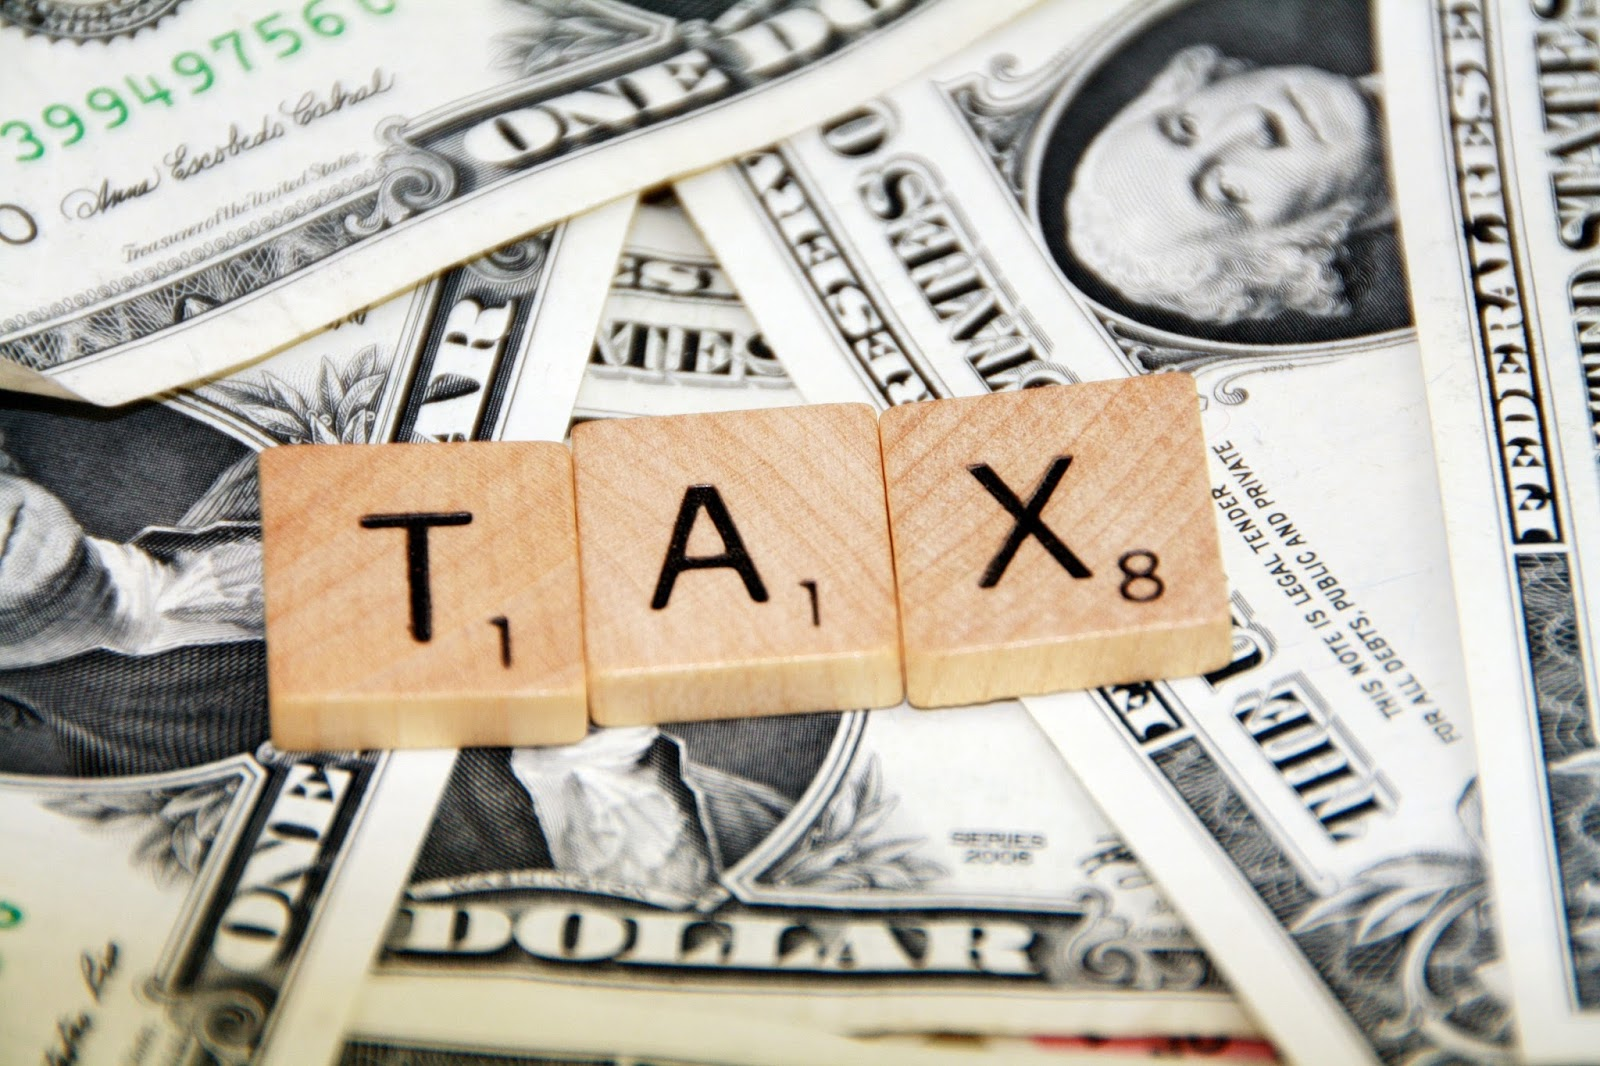 TOP TAX LAW CHANGES FOR 2016